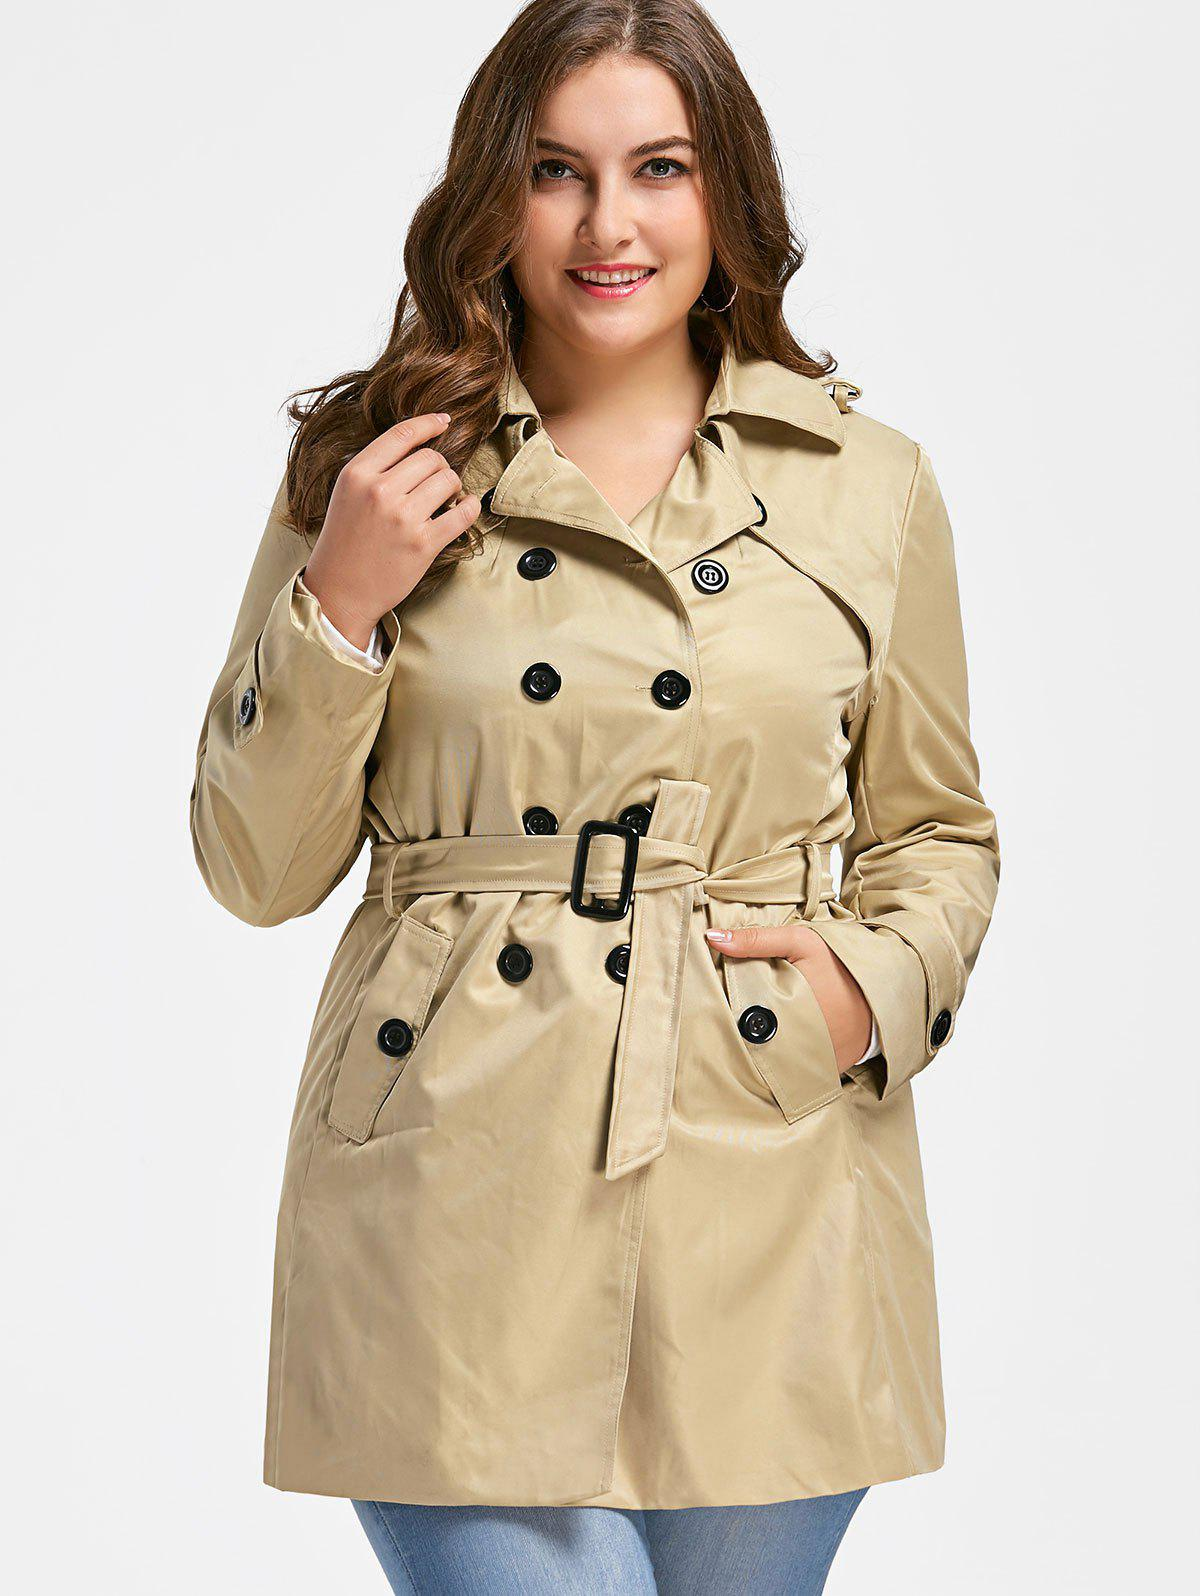 Manteau Double Breasted Plus Size - [/quot;\ u \ u e \ u a \ u d \ u e/quot;] 2XL